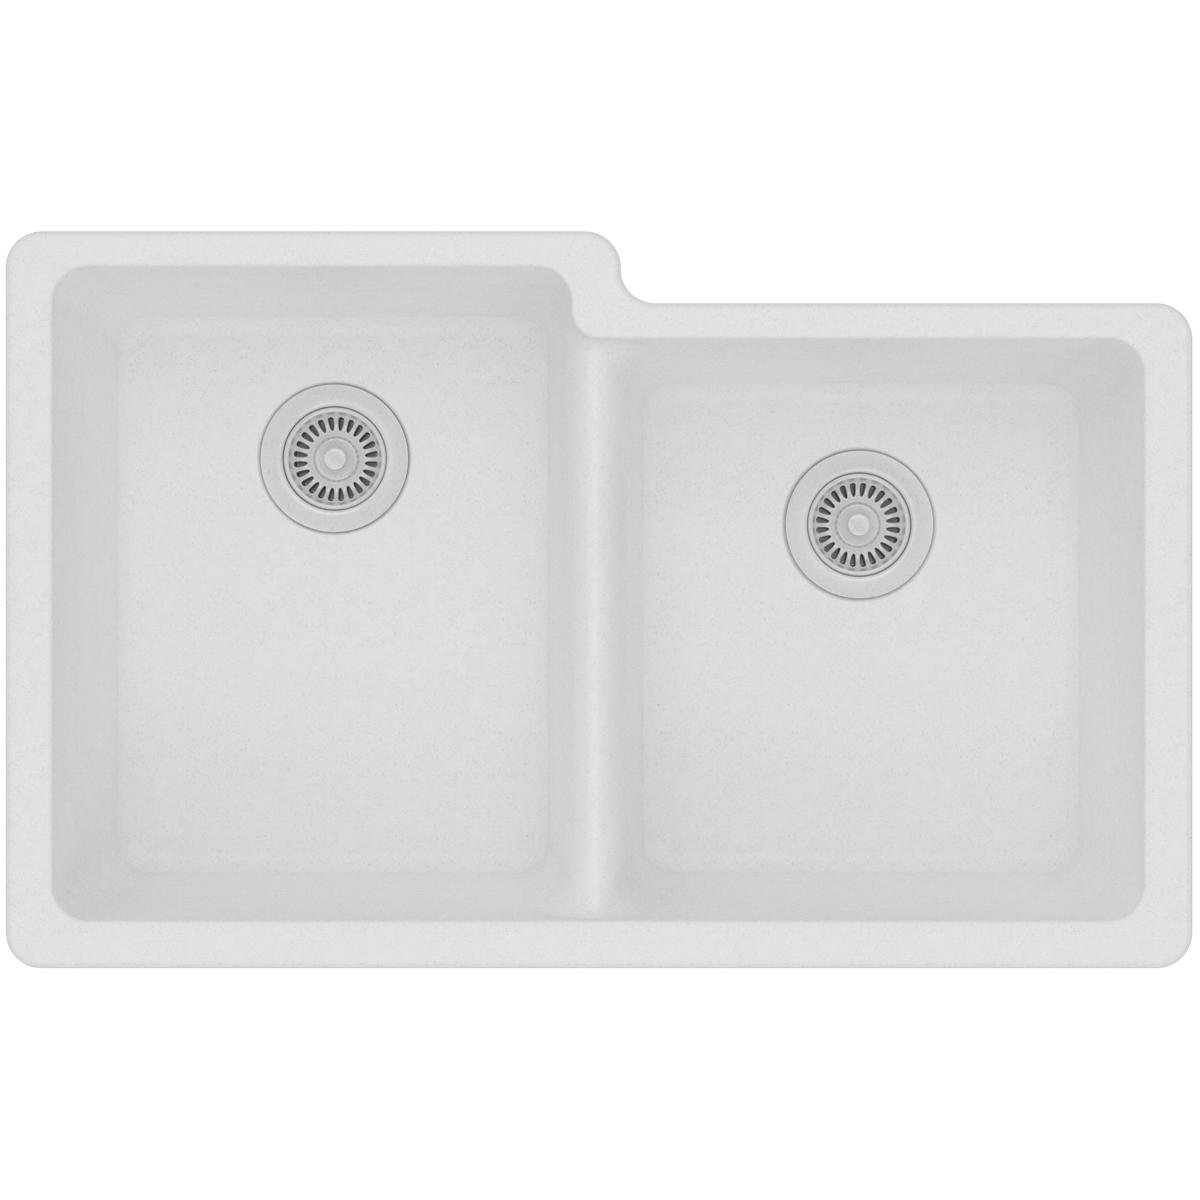 Elkay ELGU250RWH0 Quartz Classic Offset Double Bowl Undermount Sink, White